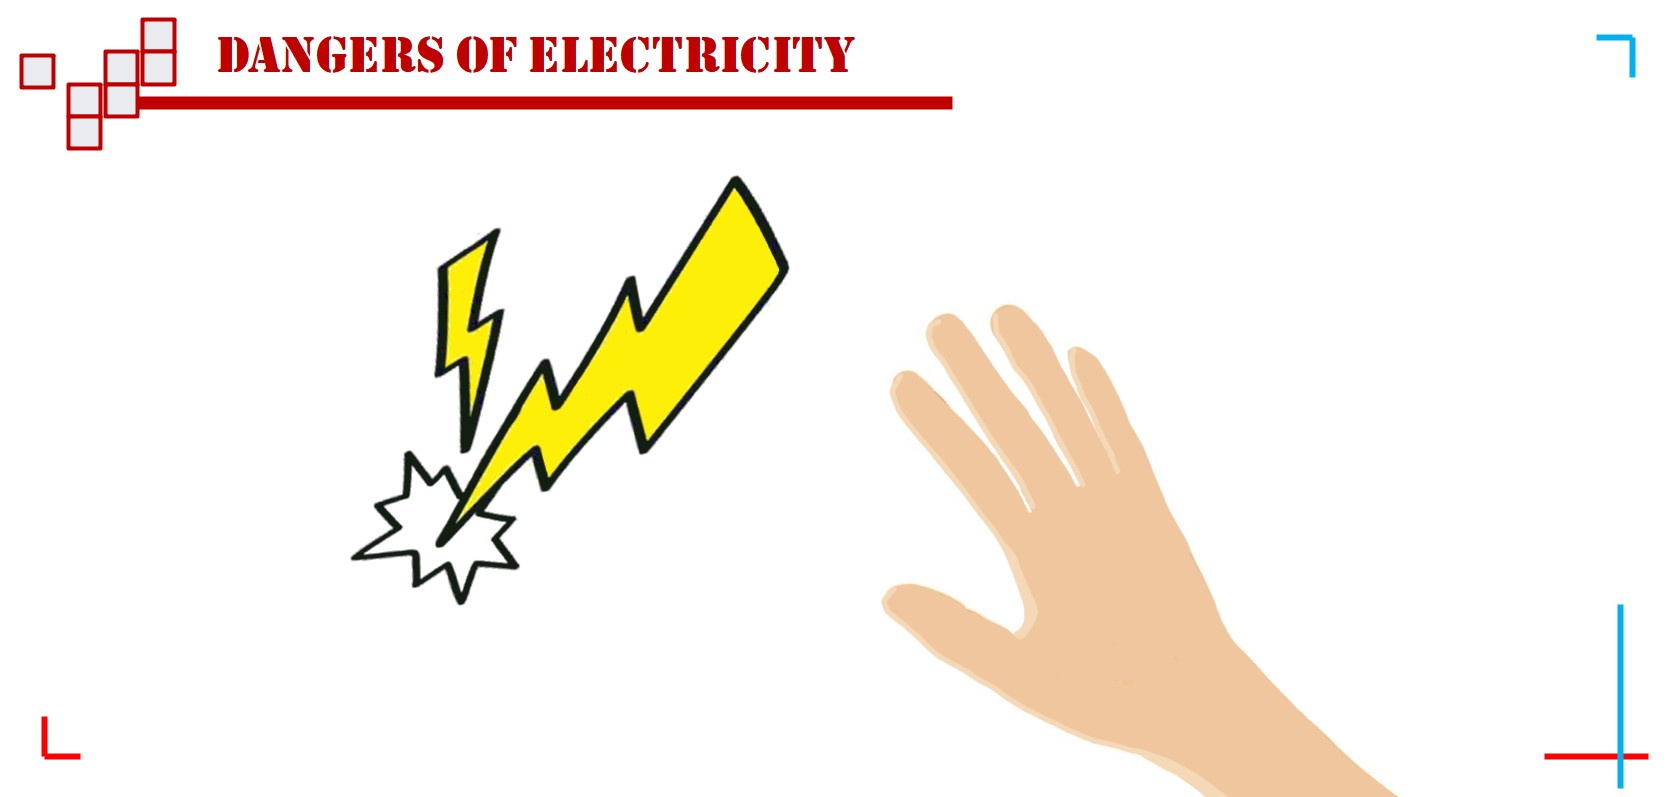 Know the dangers of electricity. More details via sales@huimultd.com